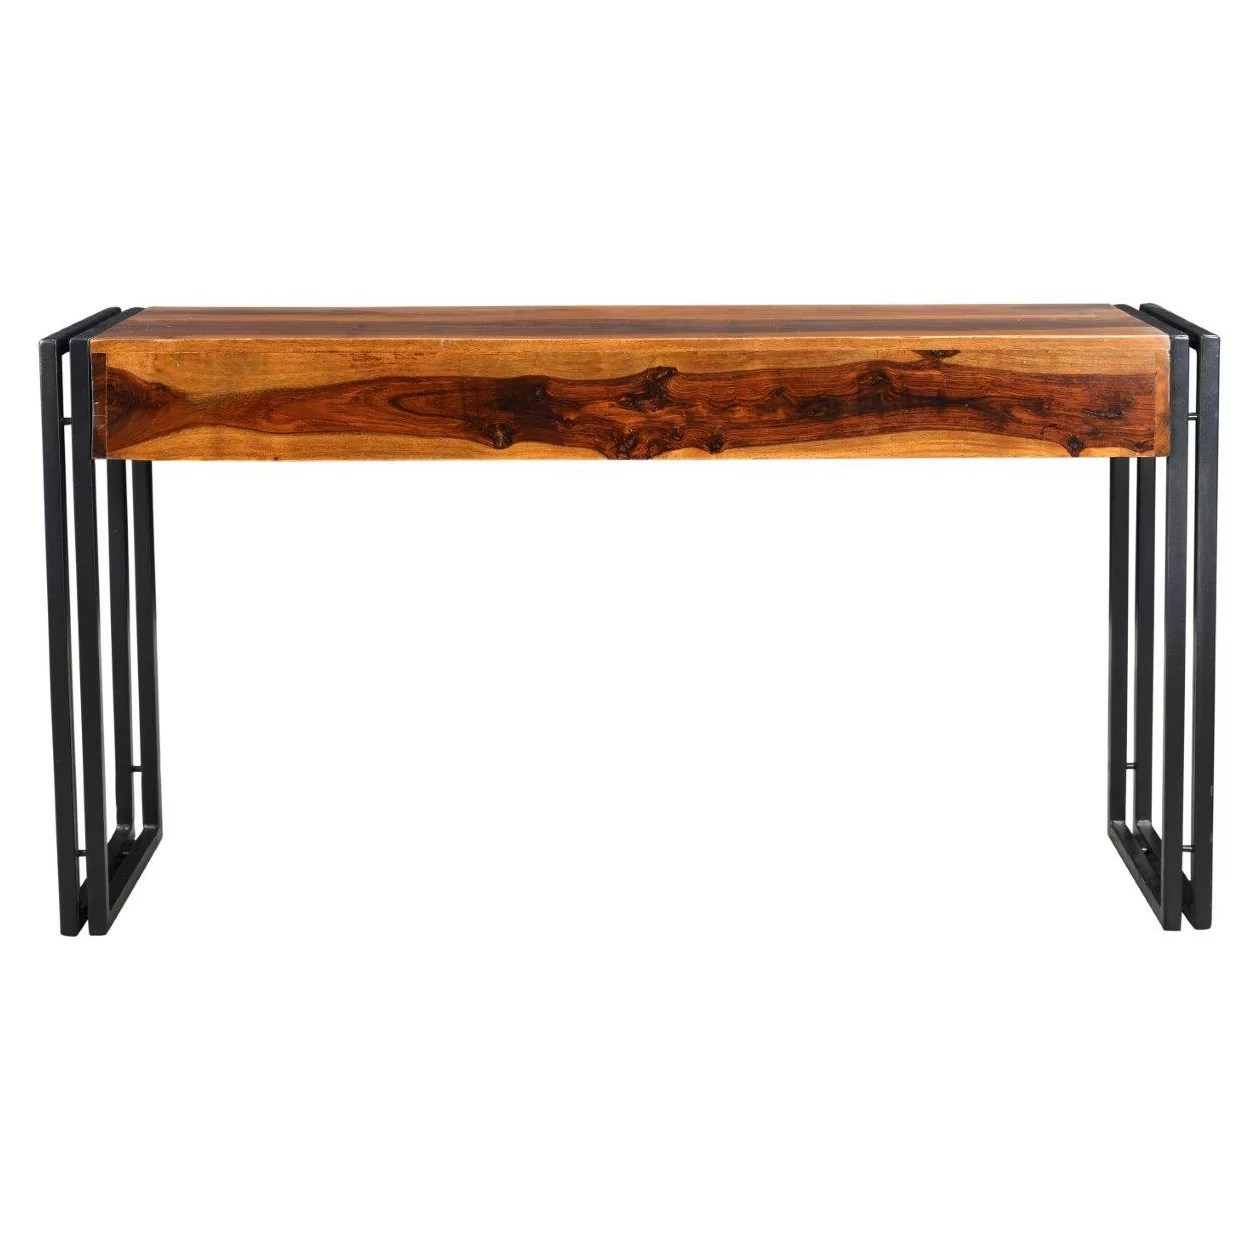 wooden sofa table legs full size bed timbergirl industrial console wayfair